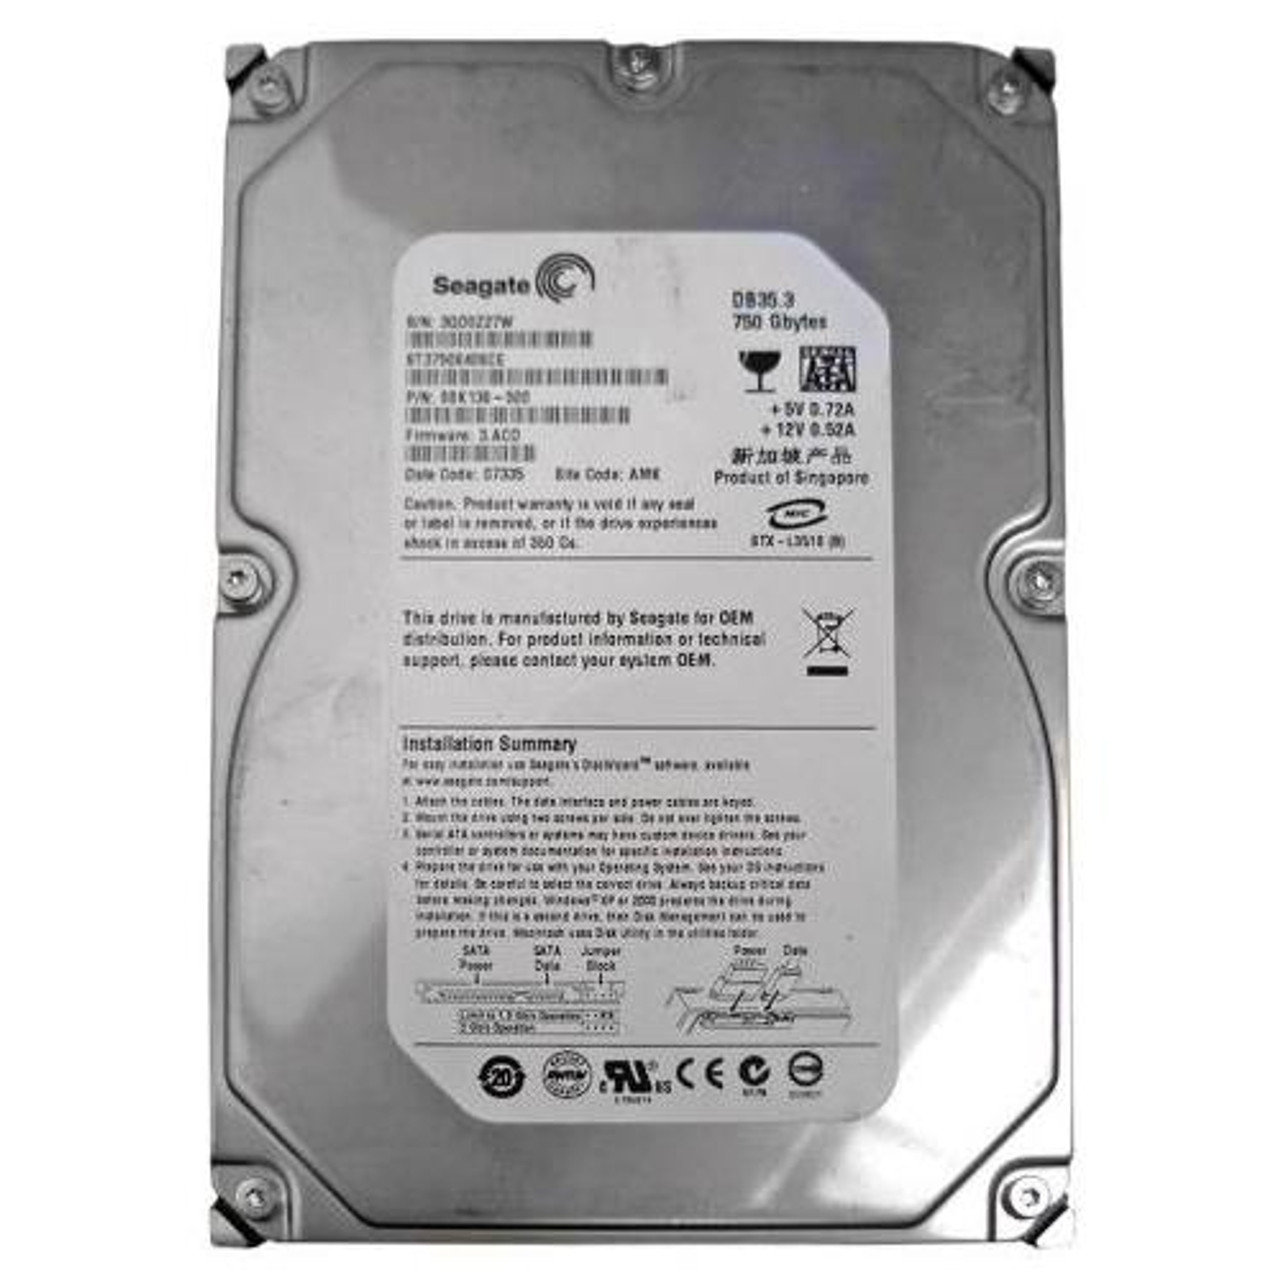 ST3750840ACE HDD Seagate DB35 750GB Internal 7200RPM 3.5/""